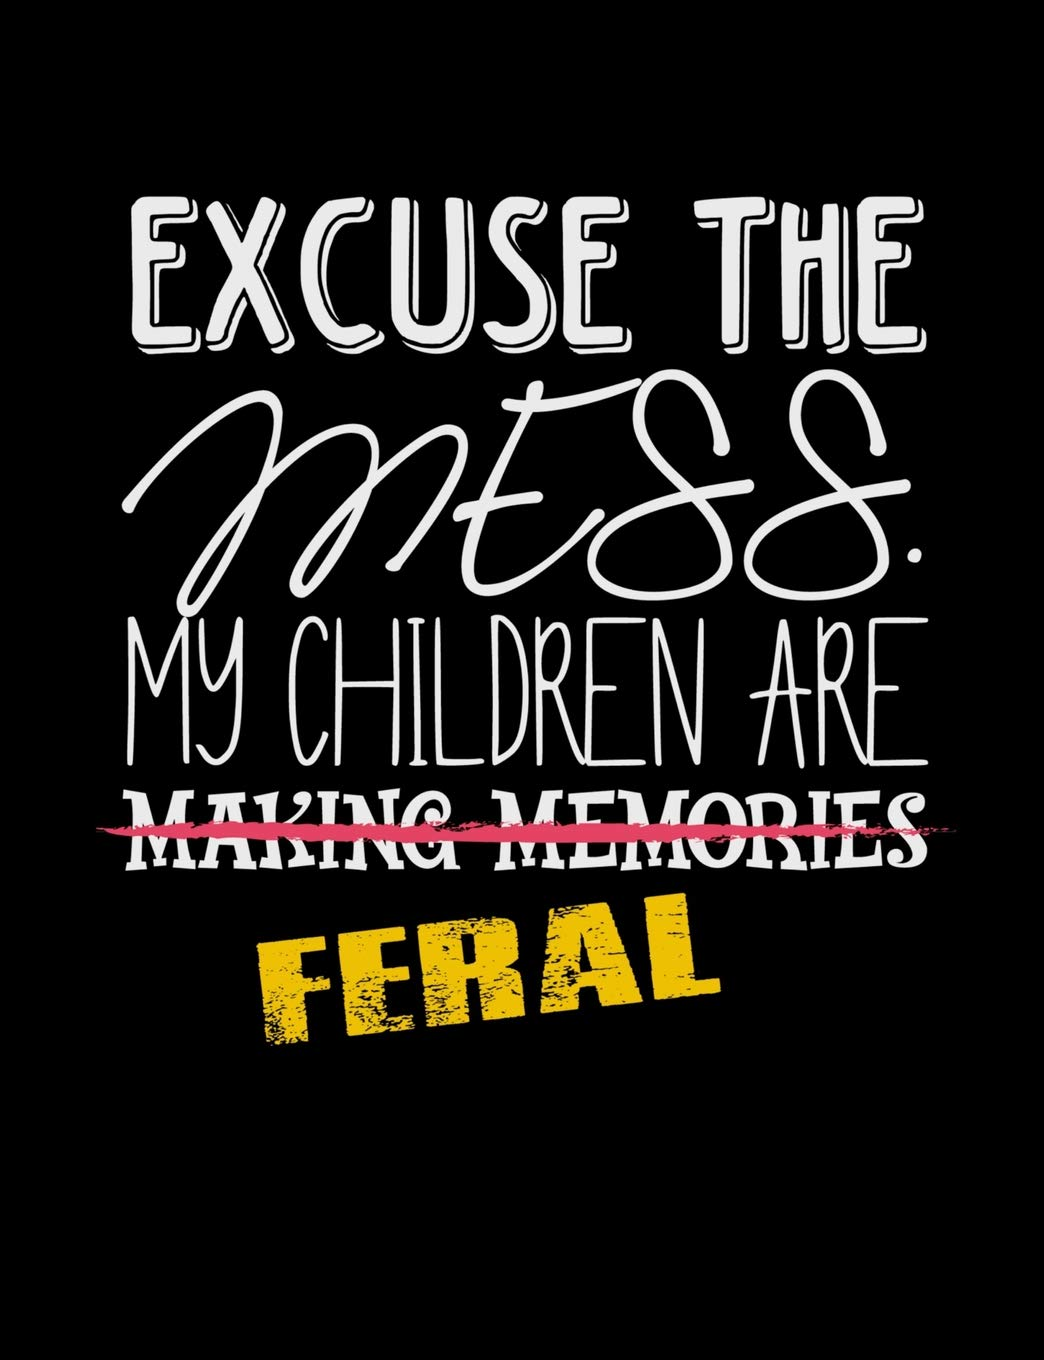 Excuse The Mess My Children Are Making Memories Feral Funny Quotes And Pun Themed College Ruled Composition Notebook Notebooks Punny 9781073414840 Amazon Com Books